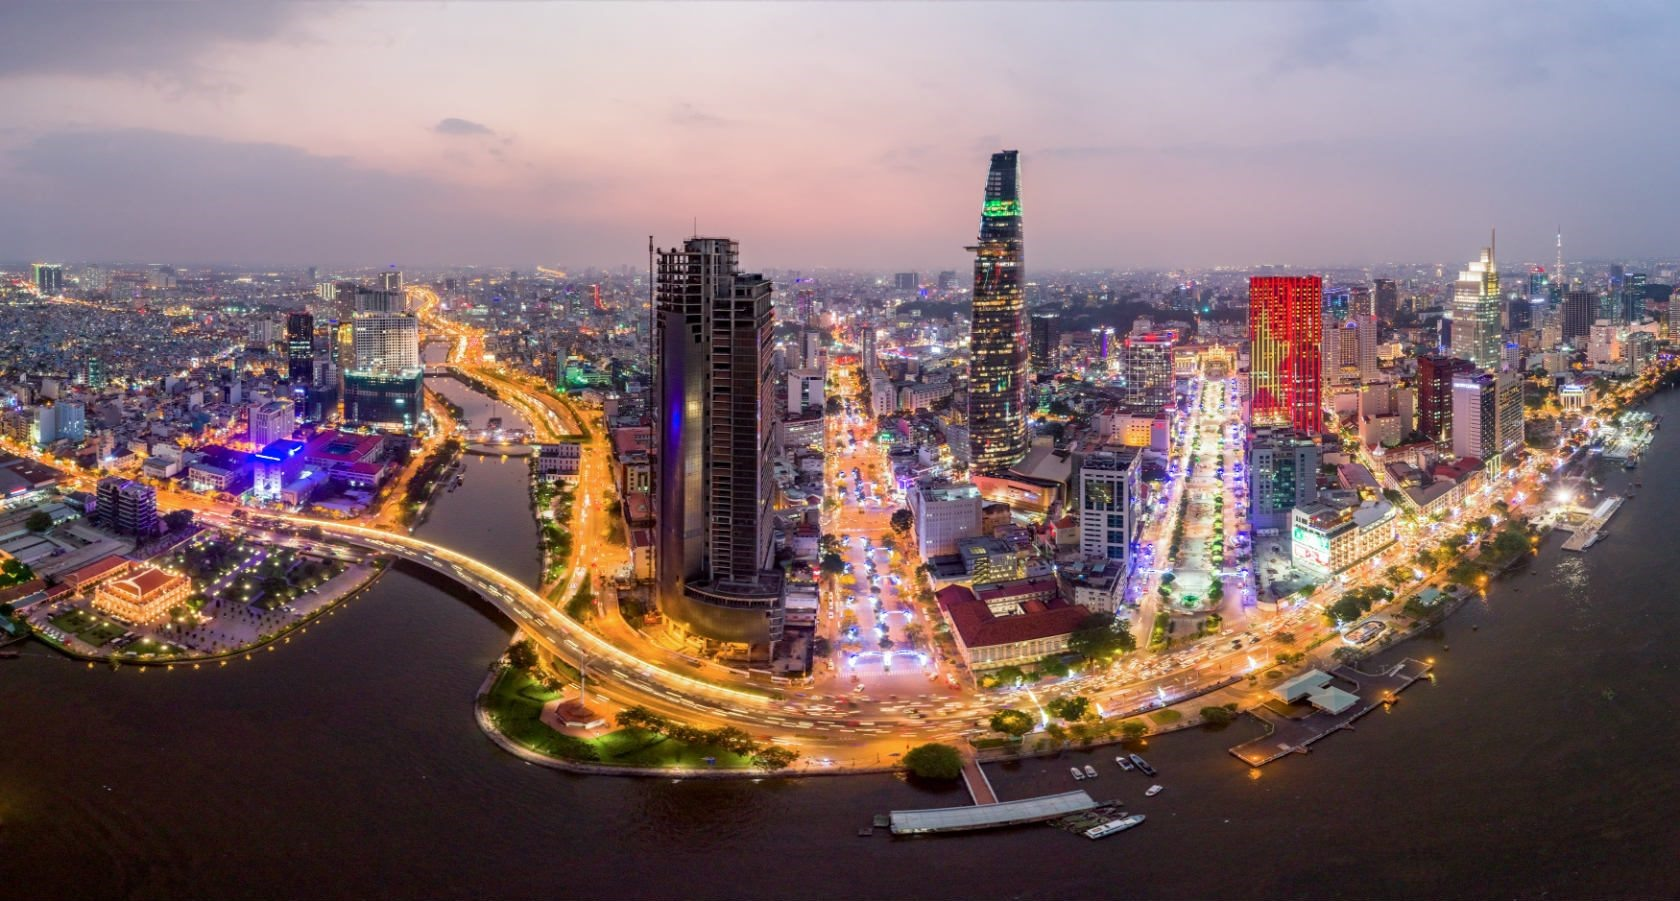 Ho Chi Minh city is popular with visitors for its skyscrapers with attractive French architectures. It is regarded as the most vibrant city in Vietnam.